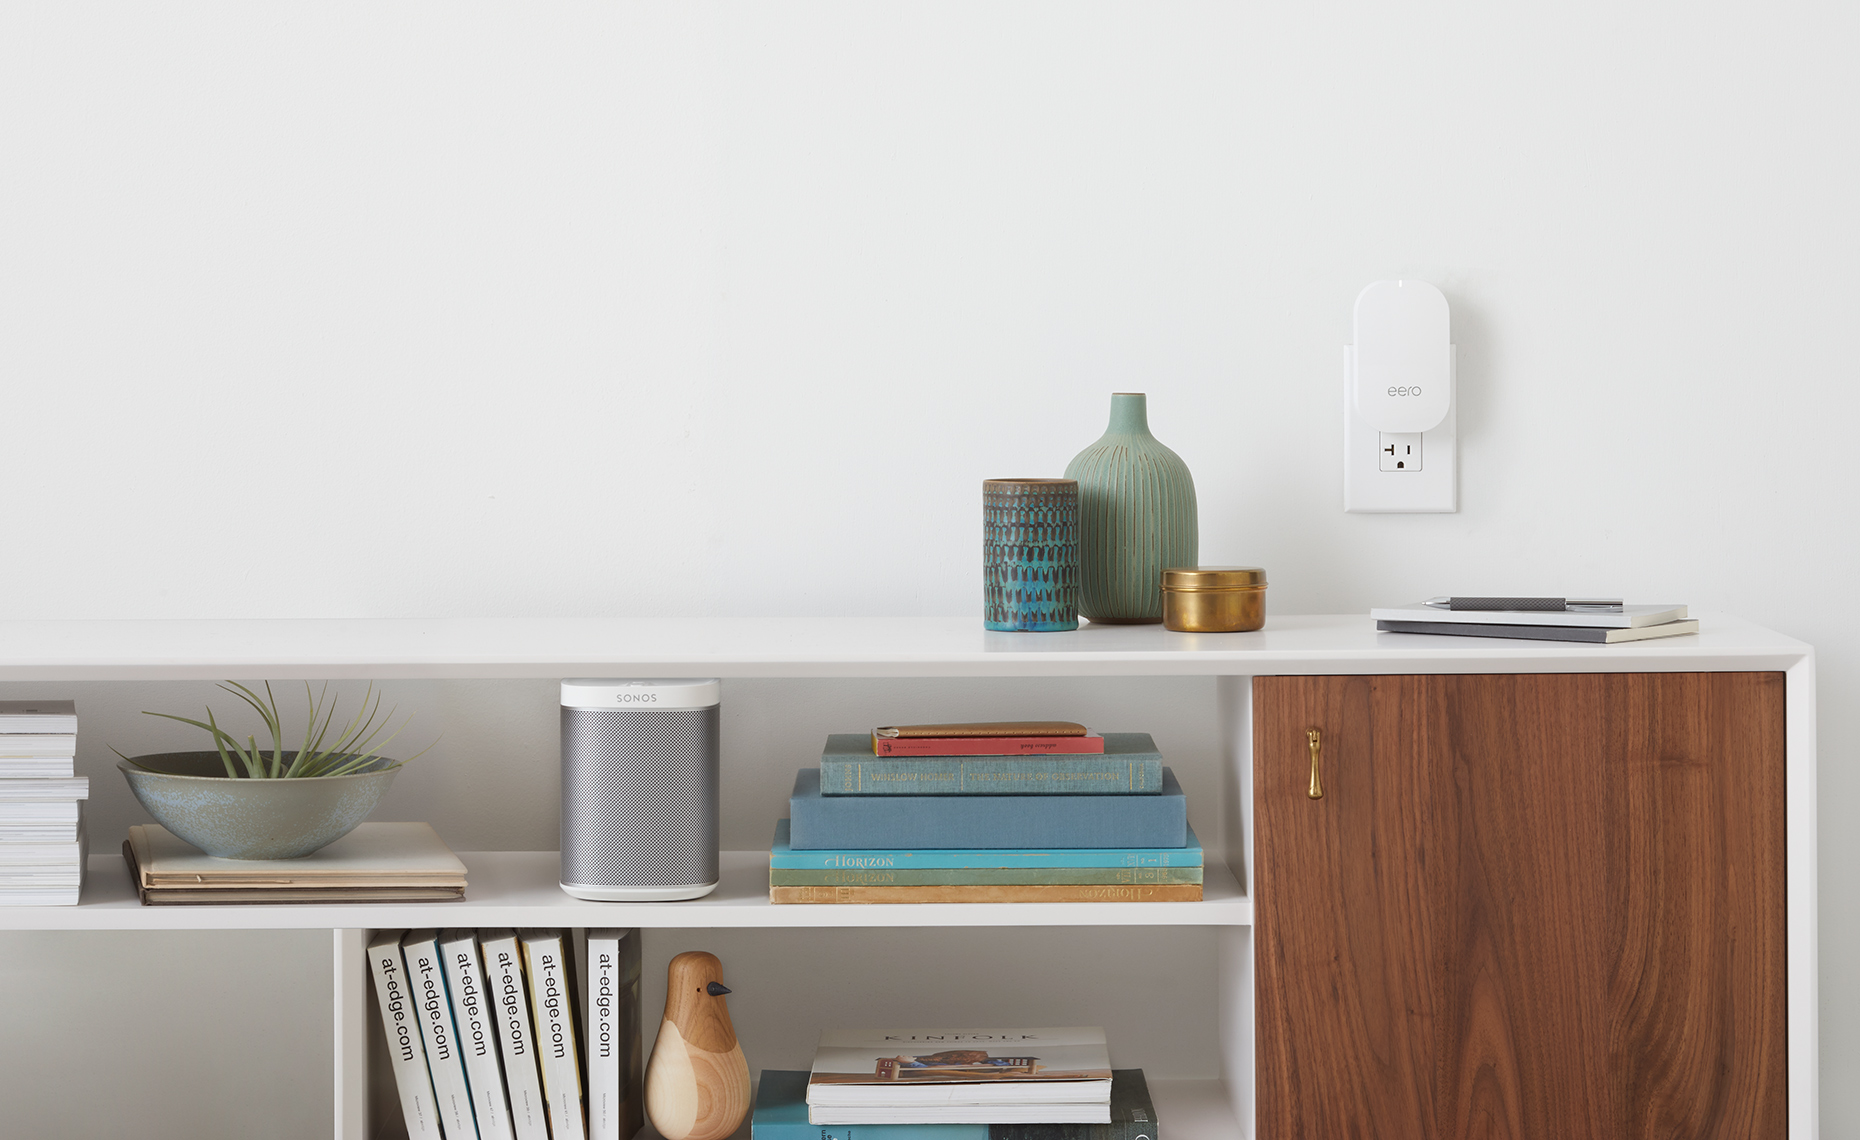 Eero-Shelf_Hero-R2